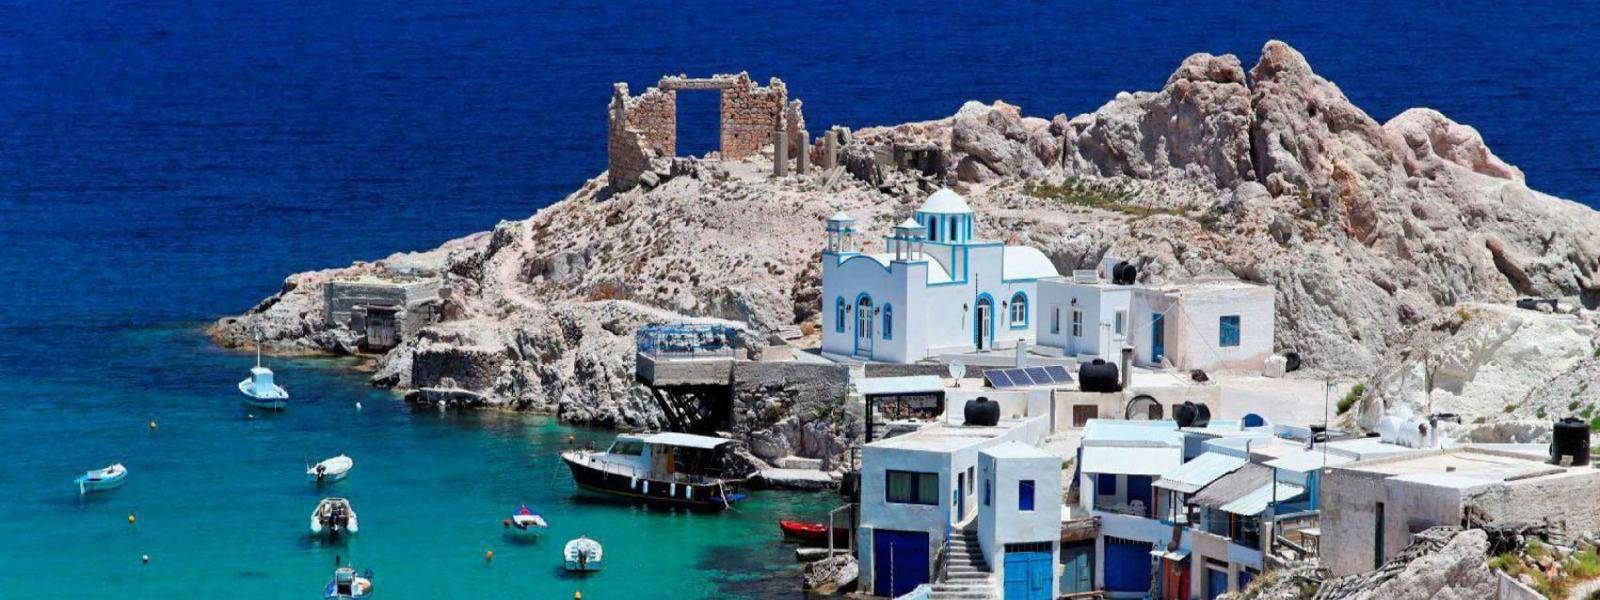 The History of Milos